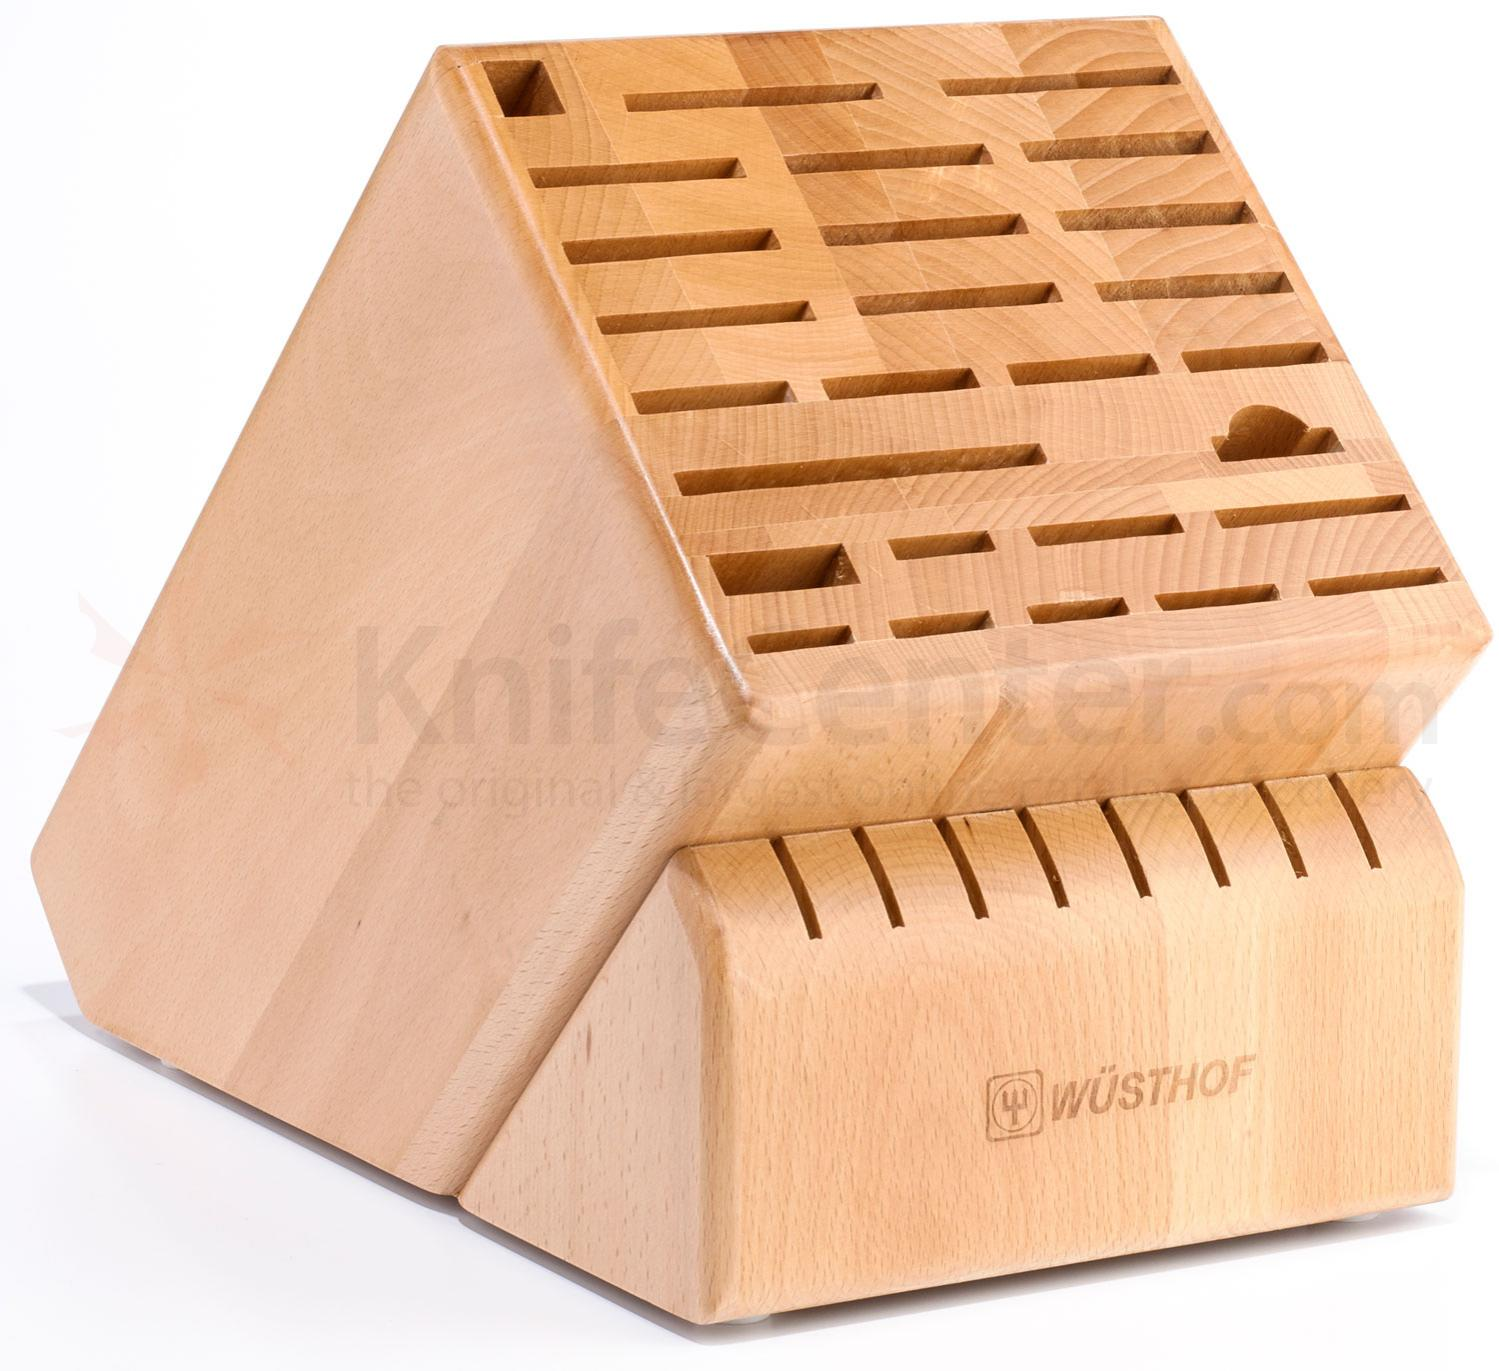 Wusthof 35 Slot Beechwood Grand Knife Block (7235-1)